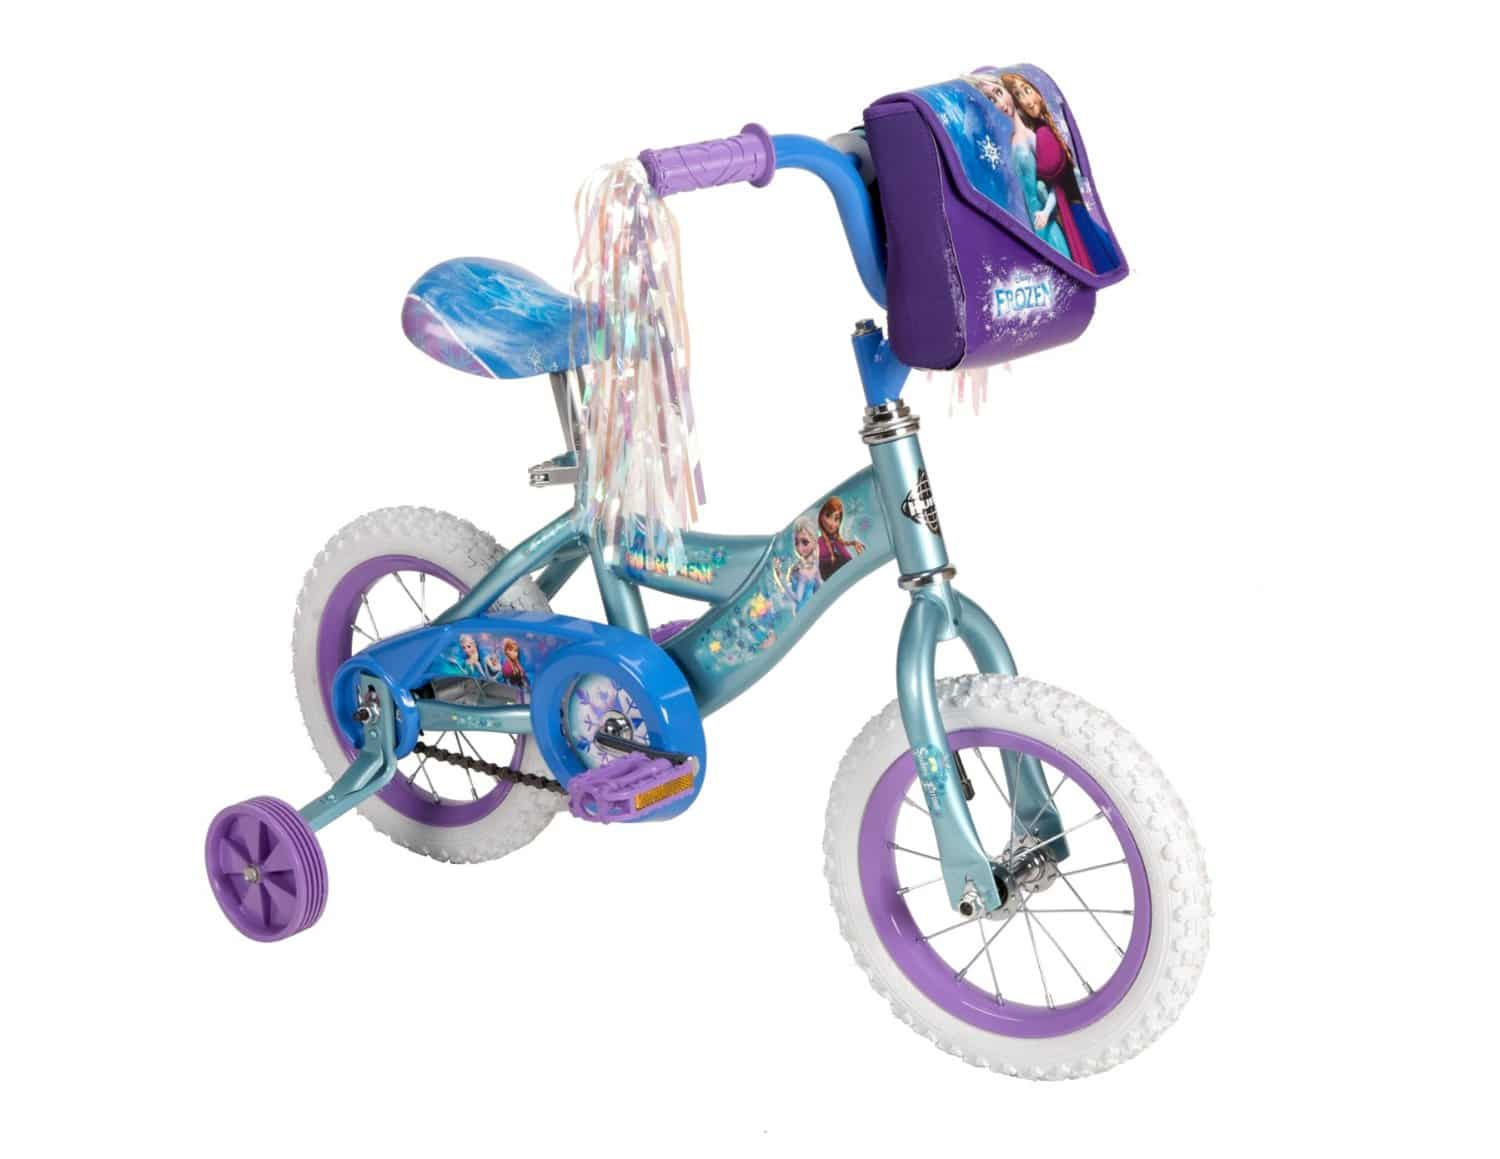 Top 10 Best Kid's Bicycles 2019 Reviews